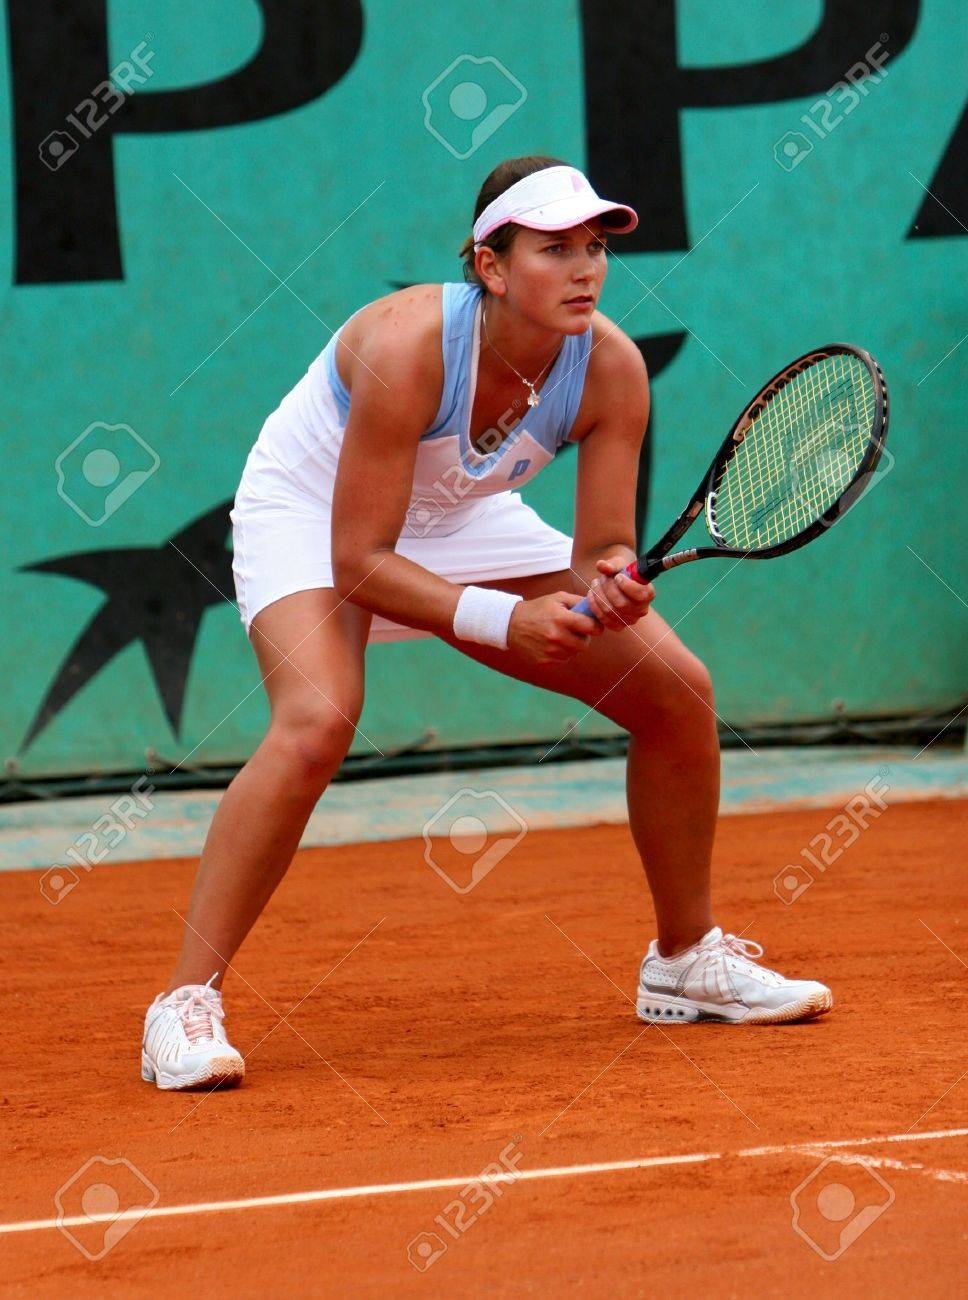 PARIS - MAY 21: South African professional tennis player CHANELLE SCHEEPERS during her match at French Open, Roland Garros on May 21, 2008 in Paris, France. Stock Photo - 7737083